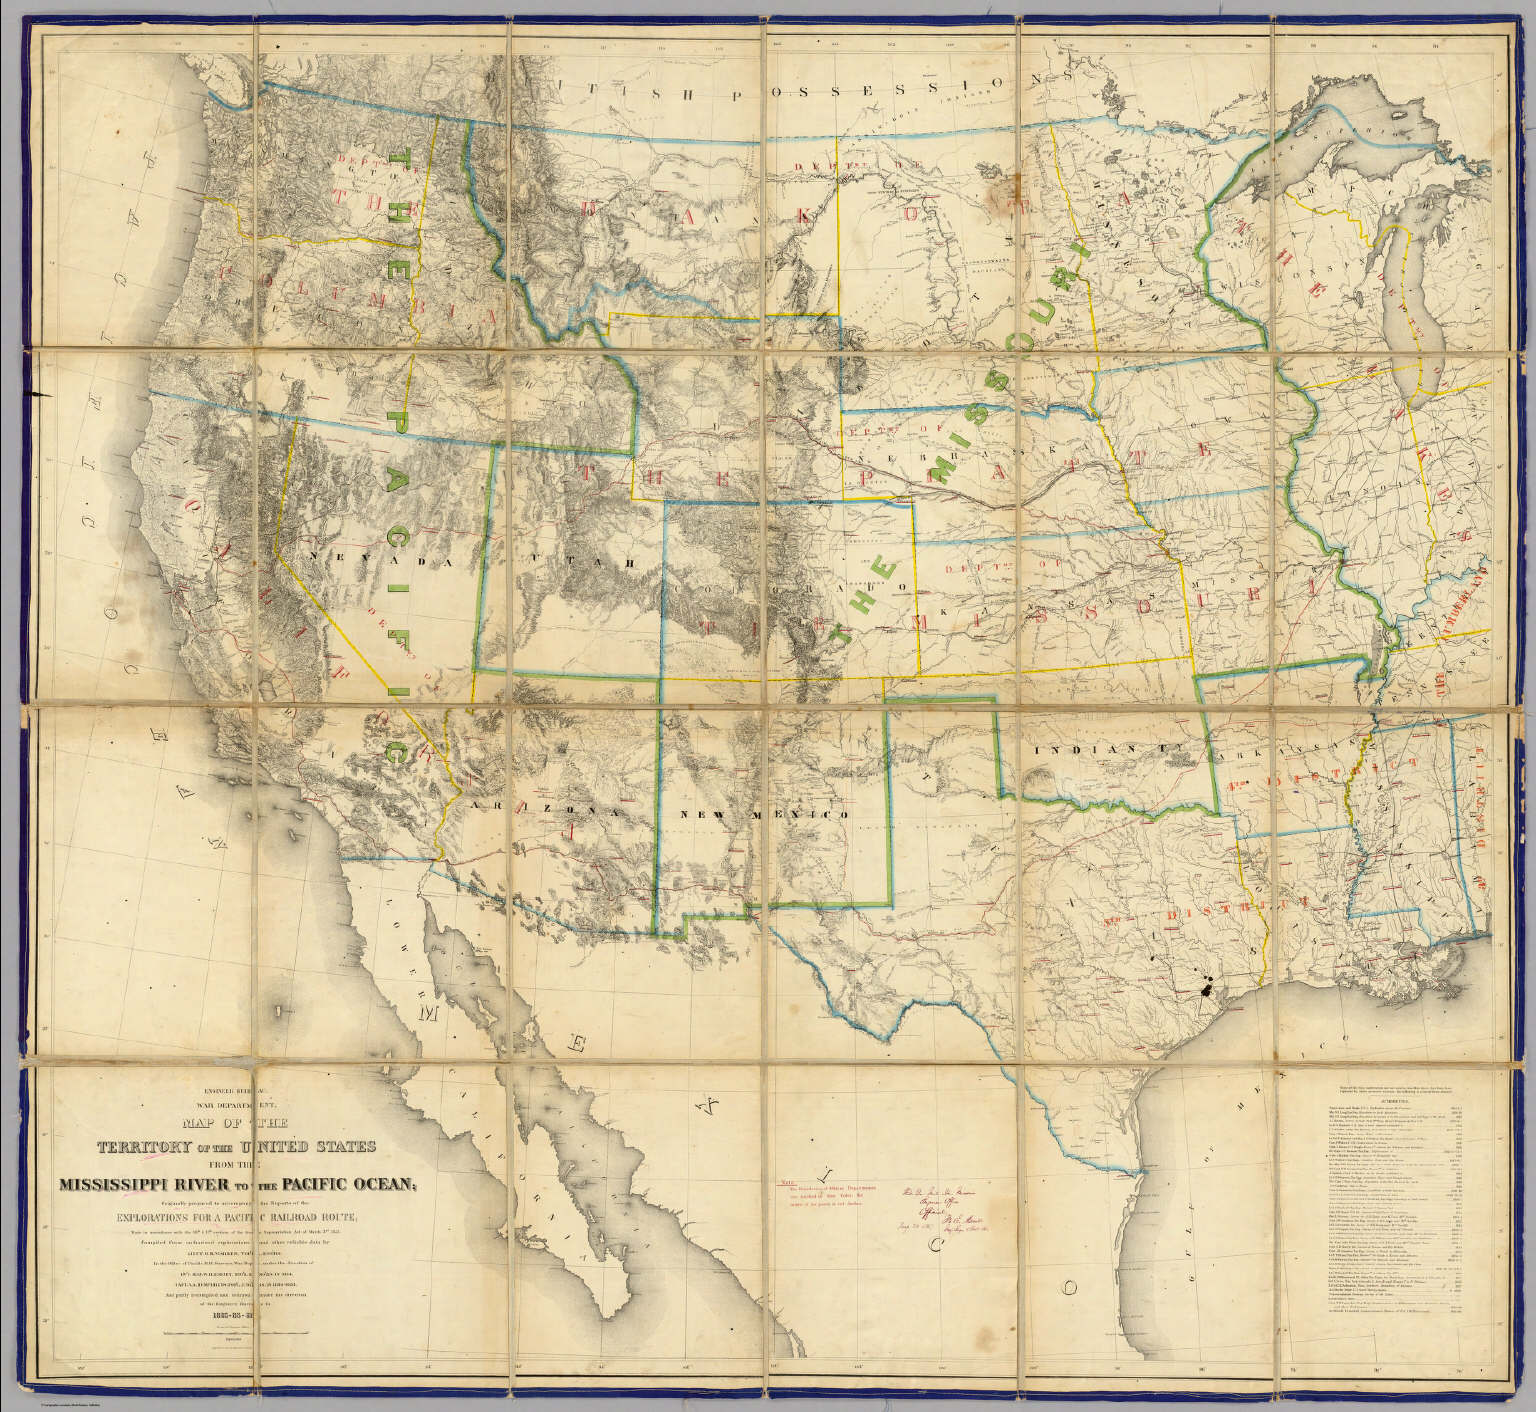 Map Of The Territory Of The United States From The Mississippi